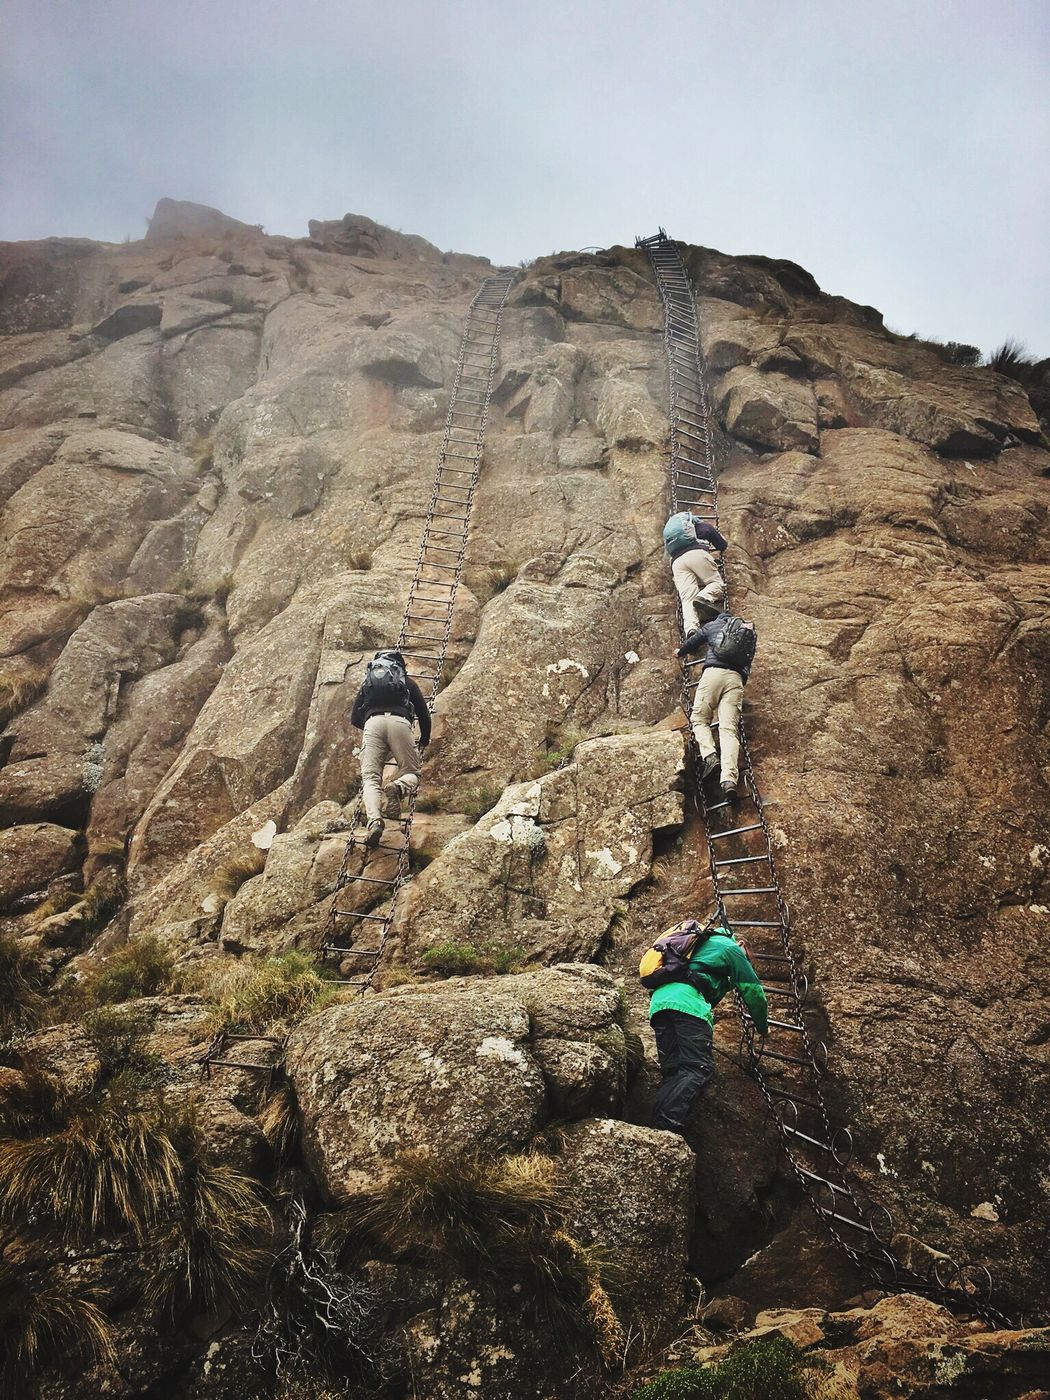 Finding New Frontiers Drakensberg, South Africa Chain Ladder Mountain Climbing Rock Climbing Cliff Rock - Object Sheer Rock Holiday Ladders Climbers South Africa Adventure Backpack Mountain Cliff Miles Away The Great Outdoors - 2017 EyeEm Awards